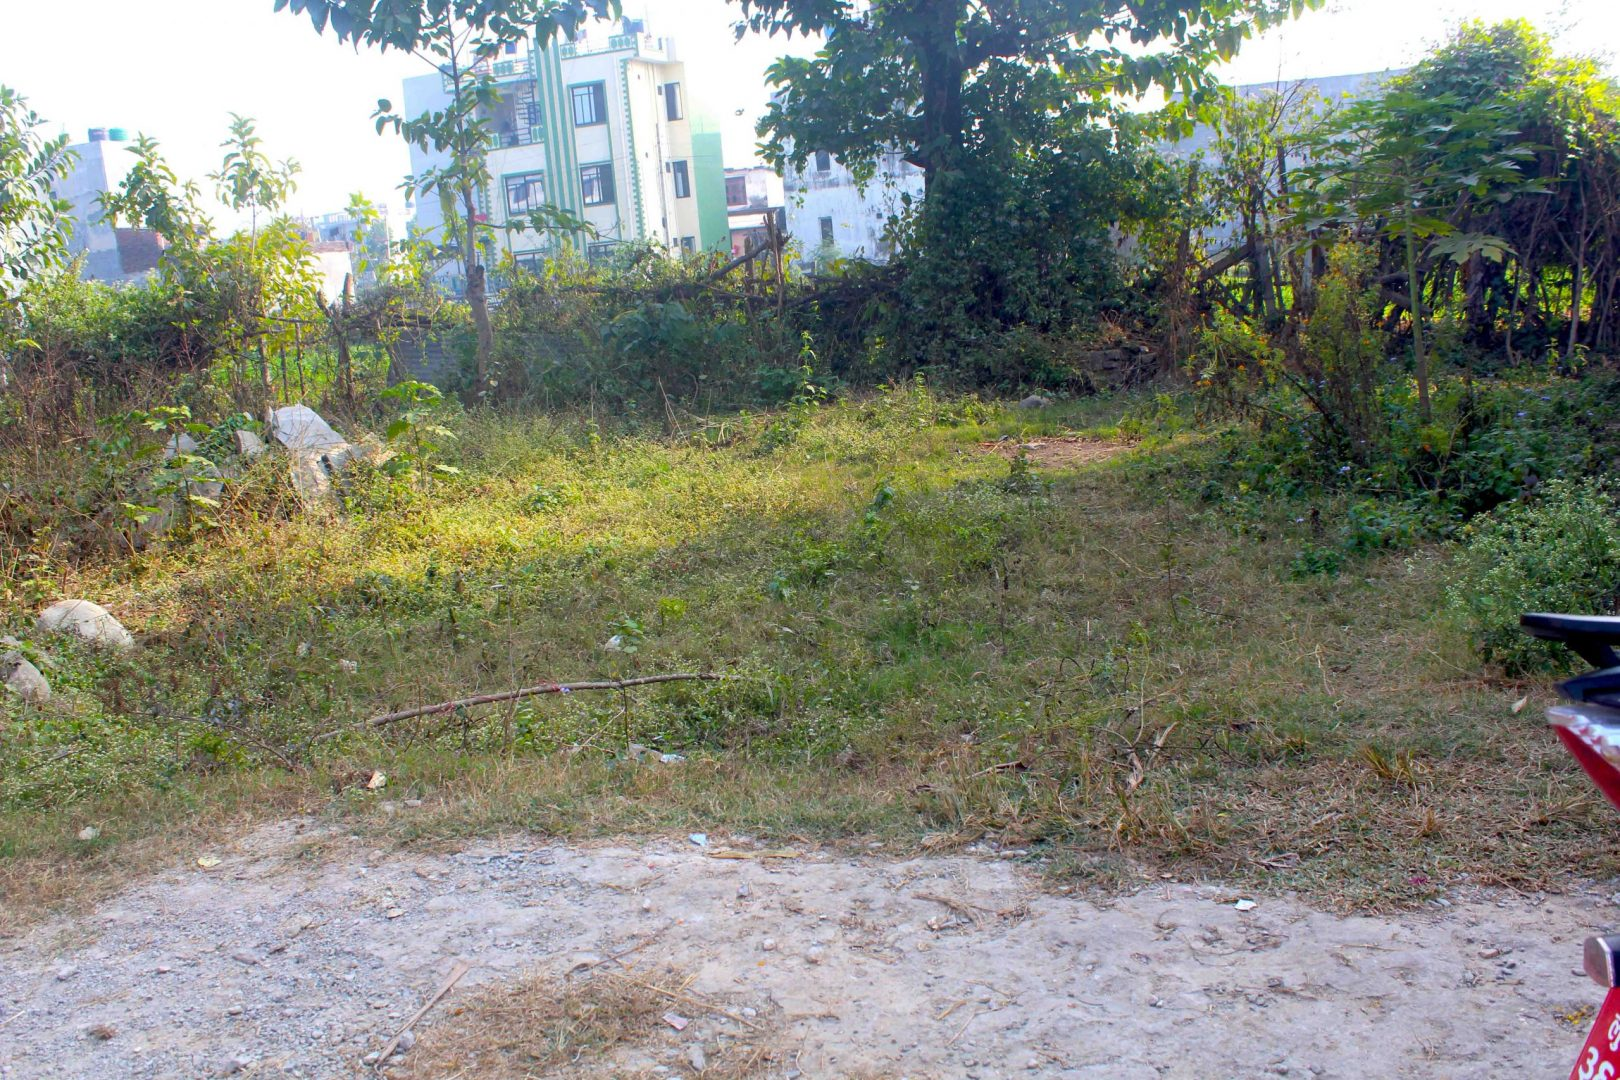 Land for sale in Yogikuti, near butwal Rupandehi, Nepal